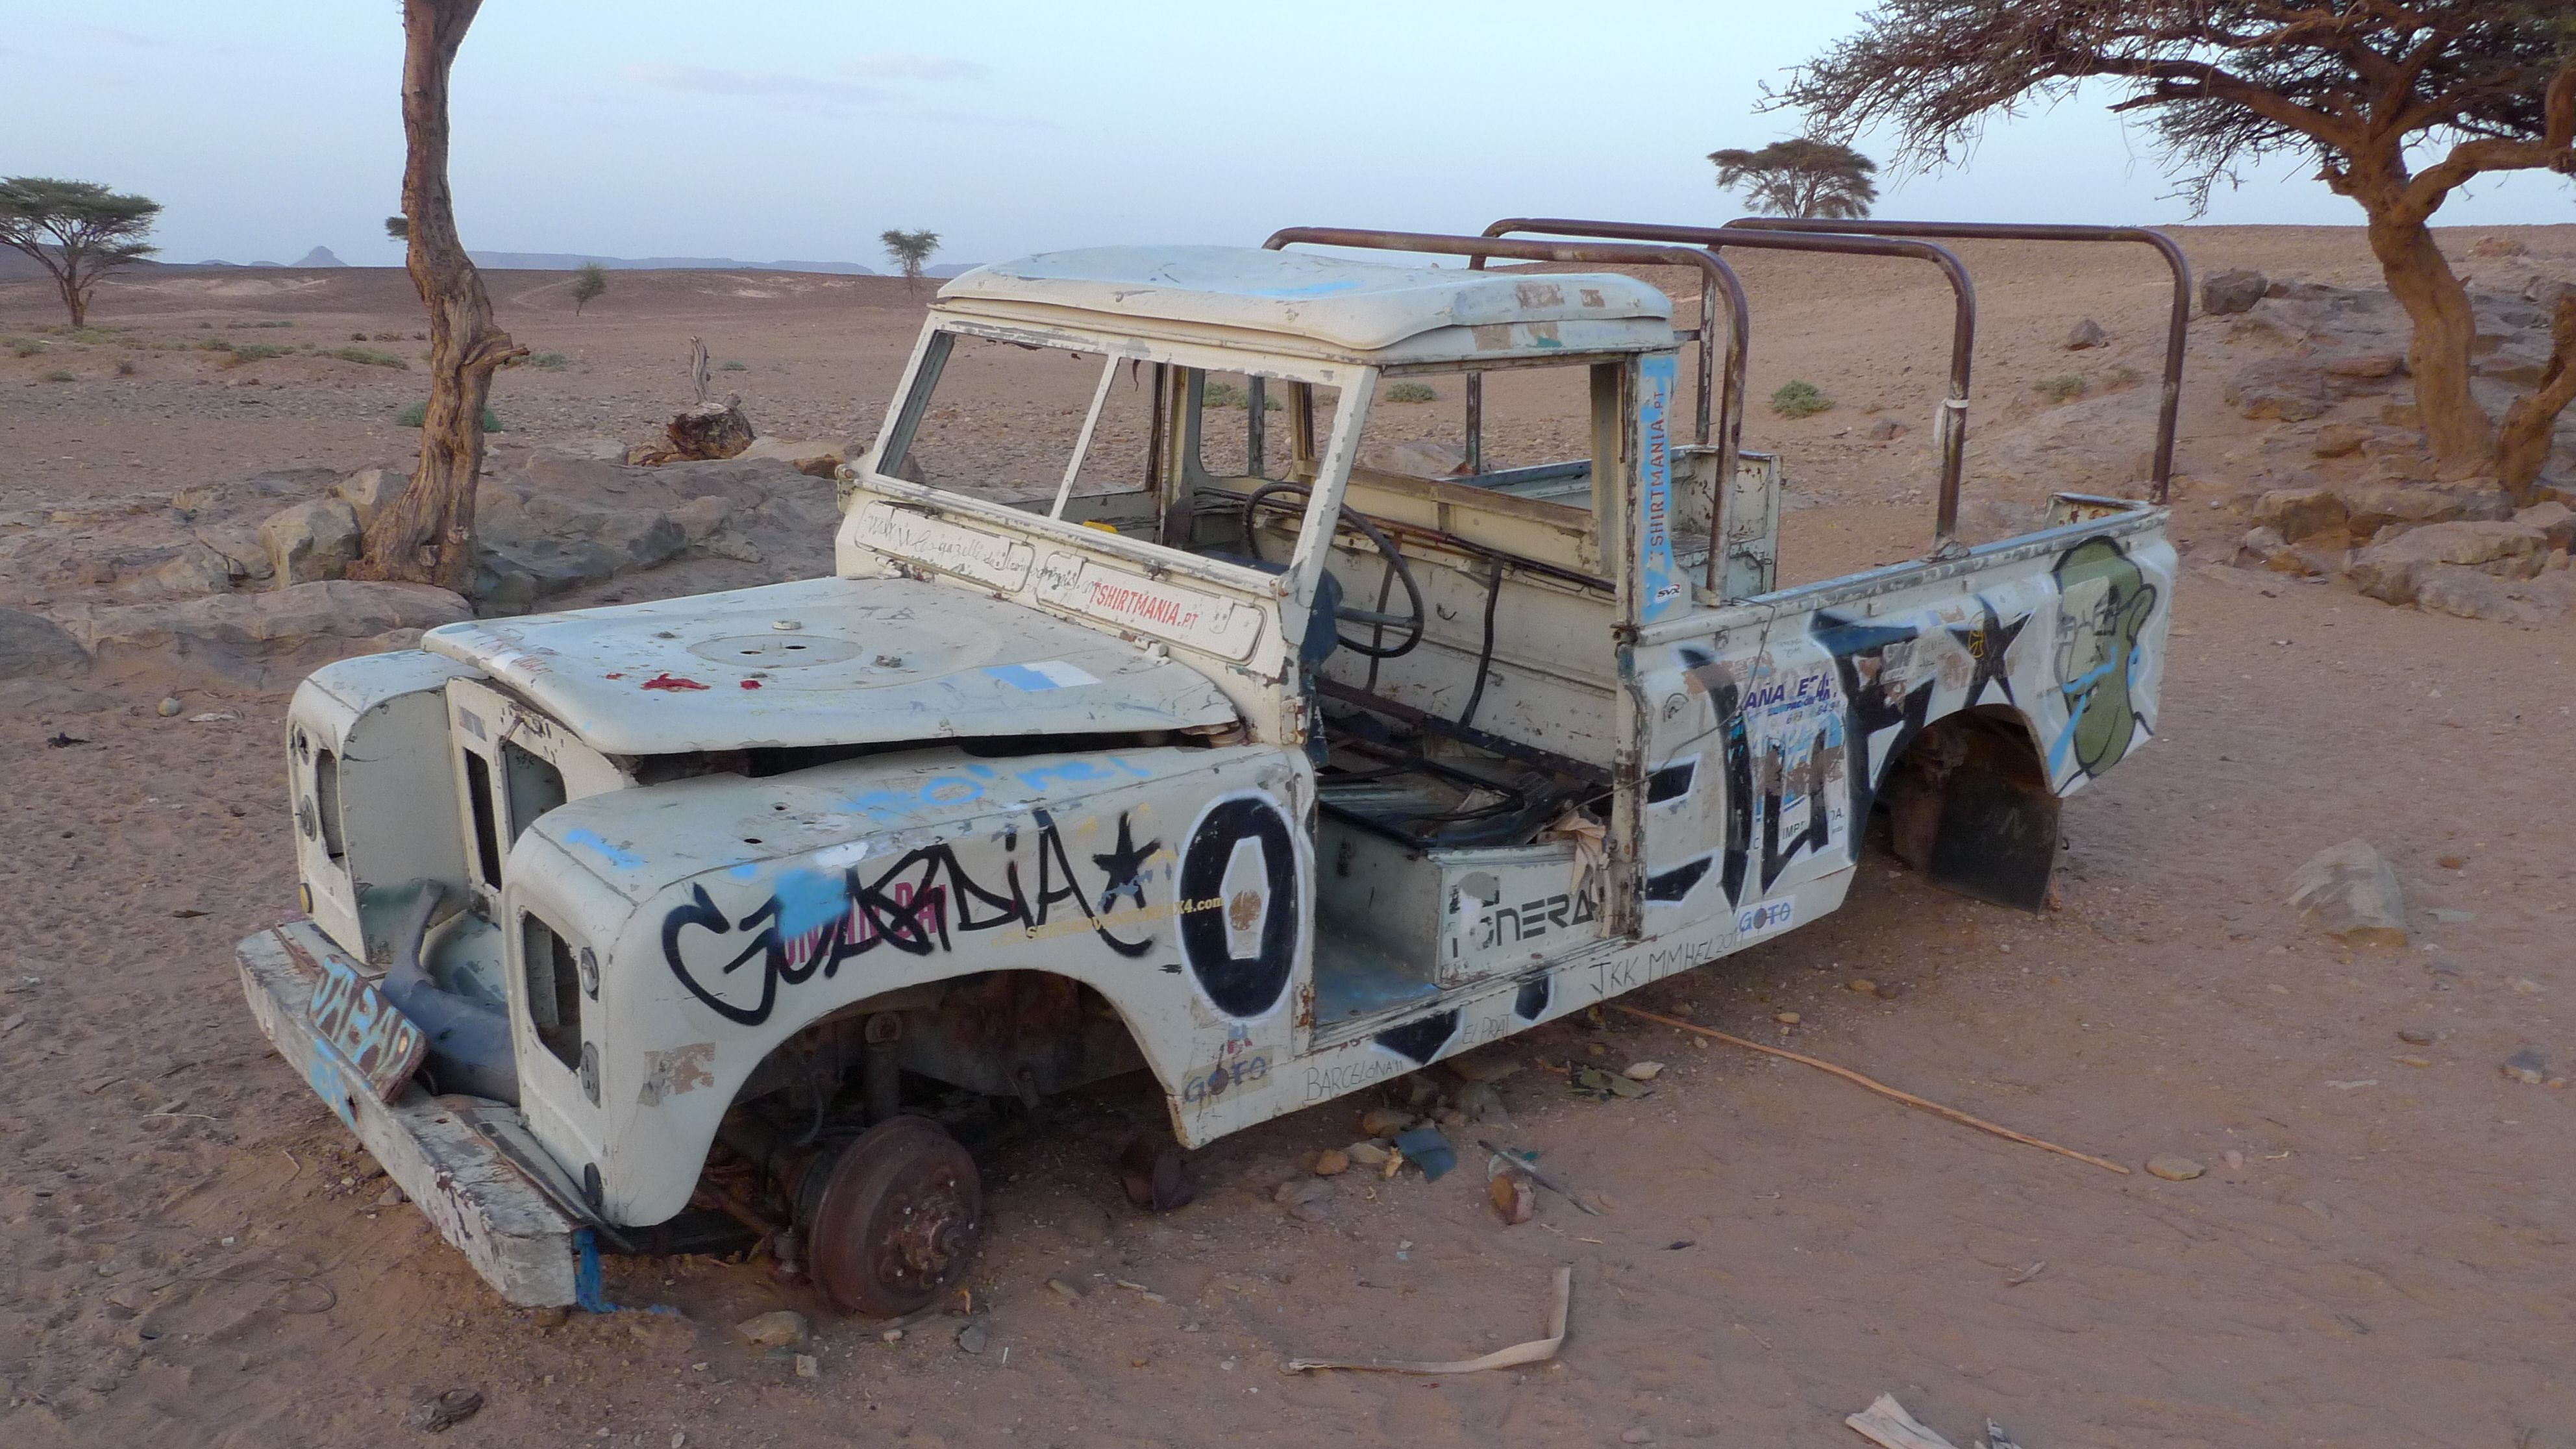 I Found This Land Rover At The Sahara Desert Morocco Land